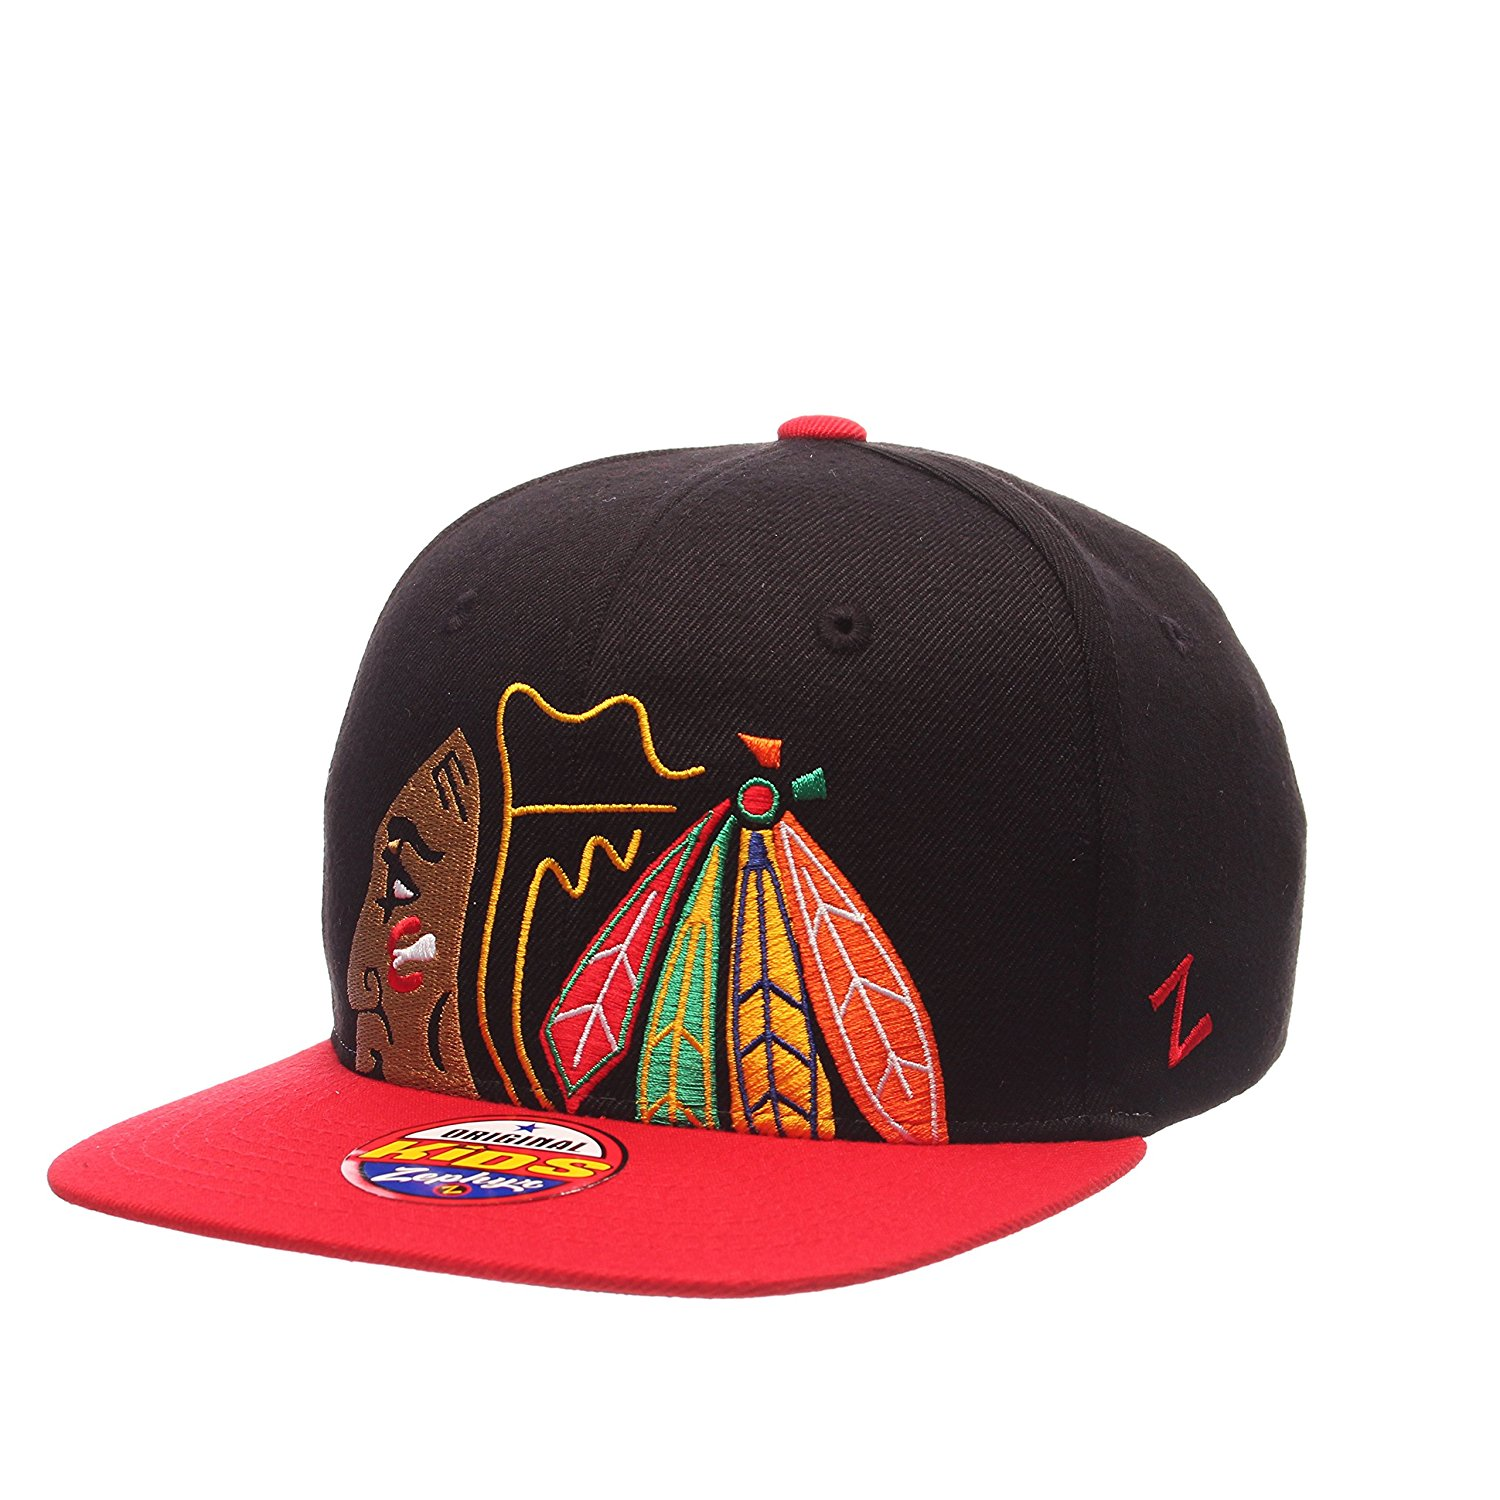 09d155db Cheap Youth Snapback Size, find Youth Snapback Size deals on line at ...